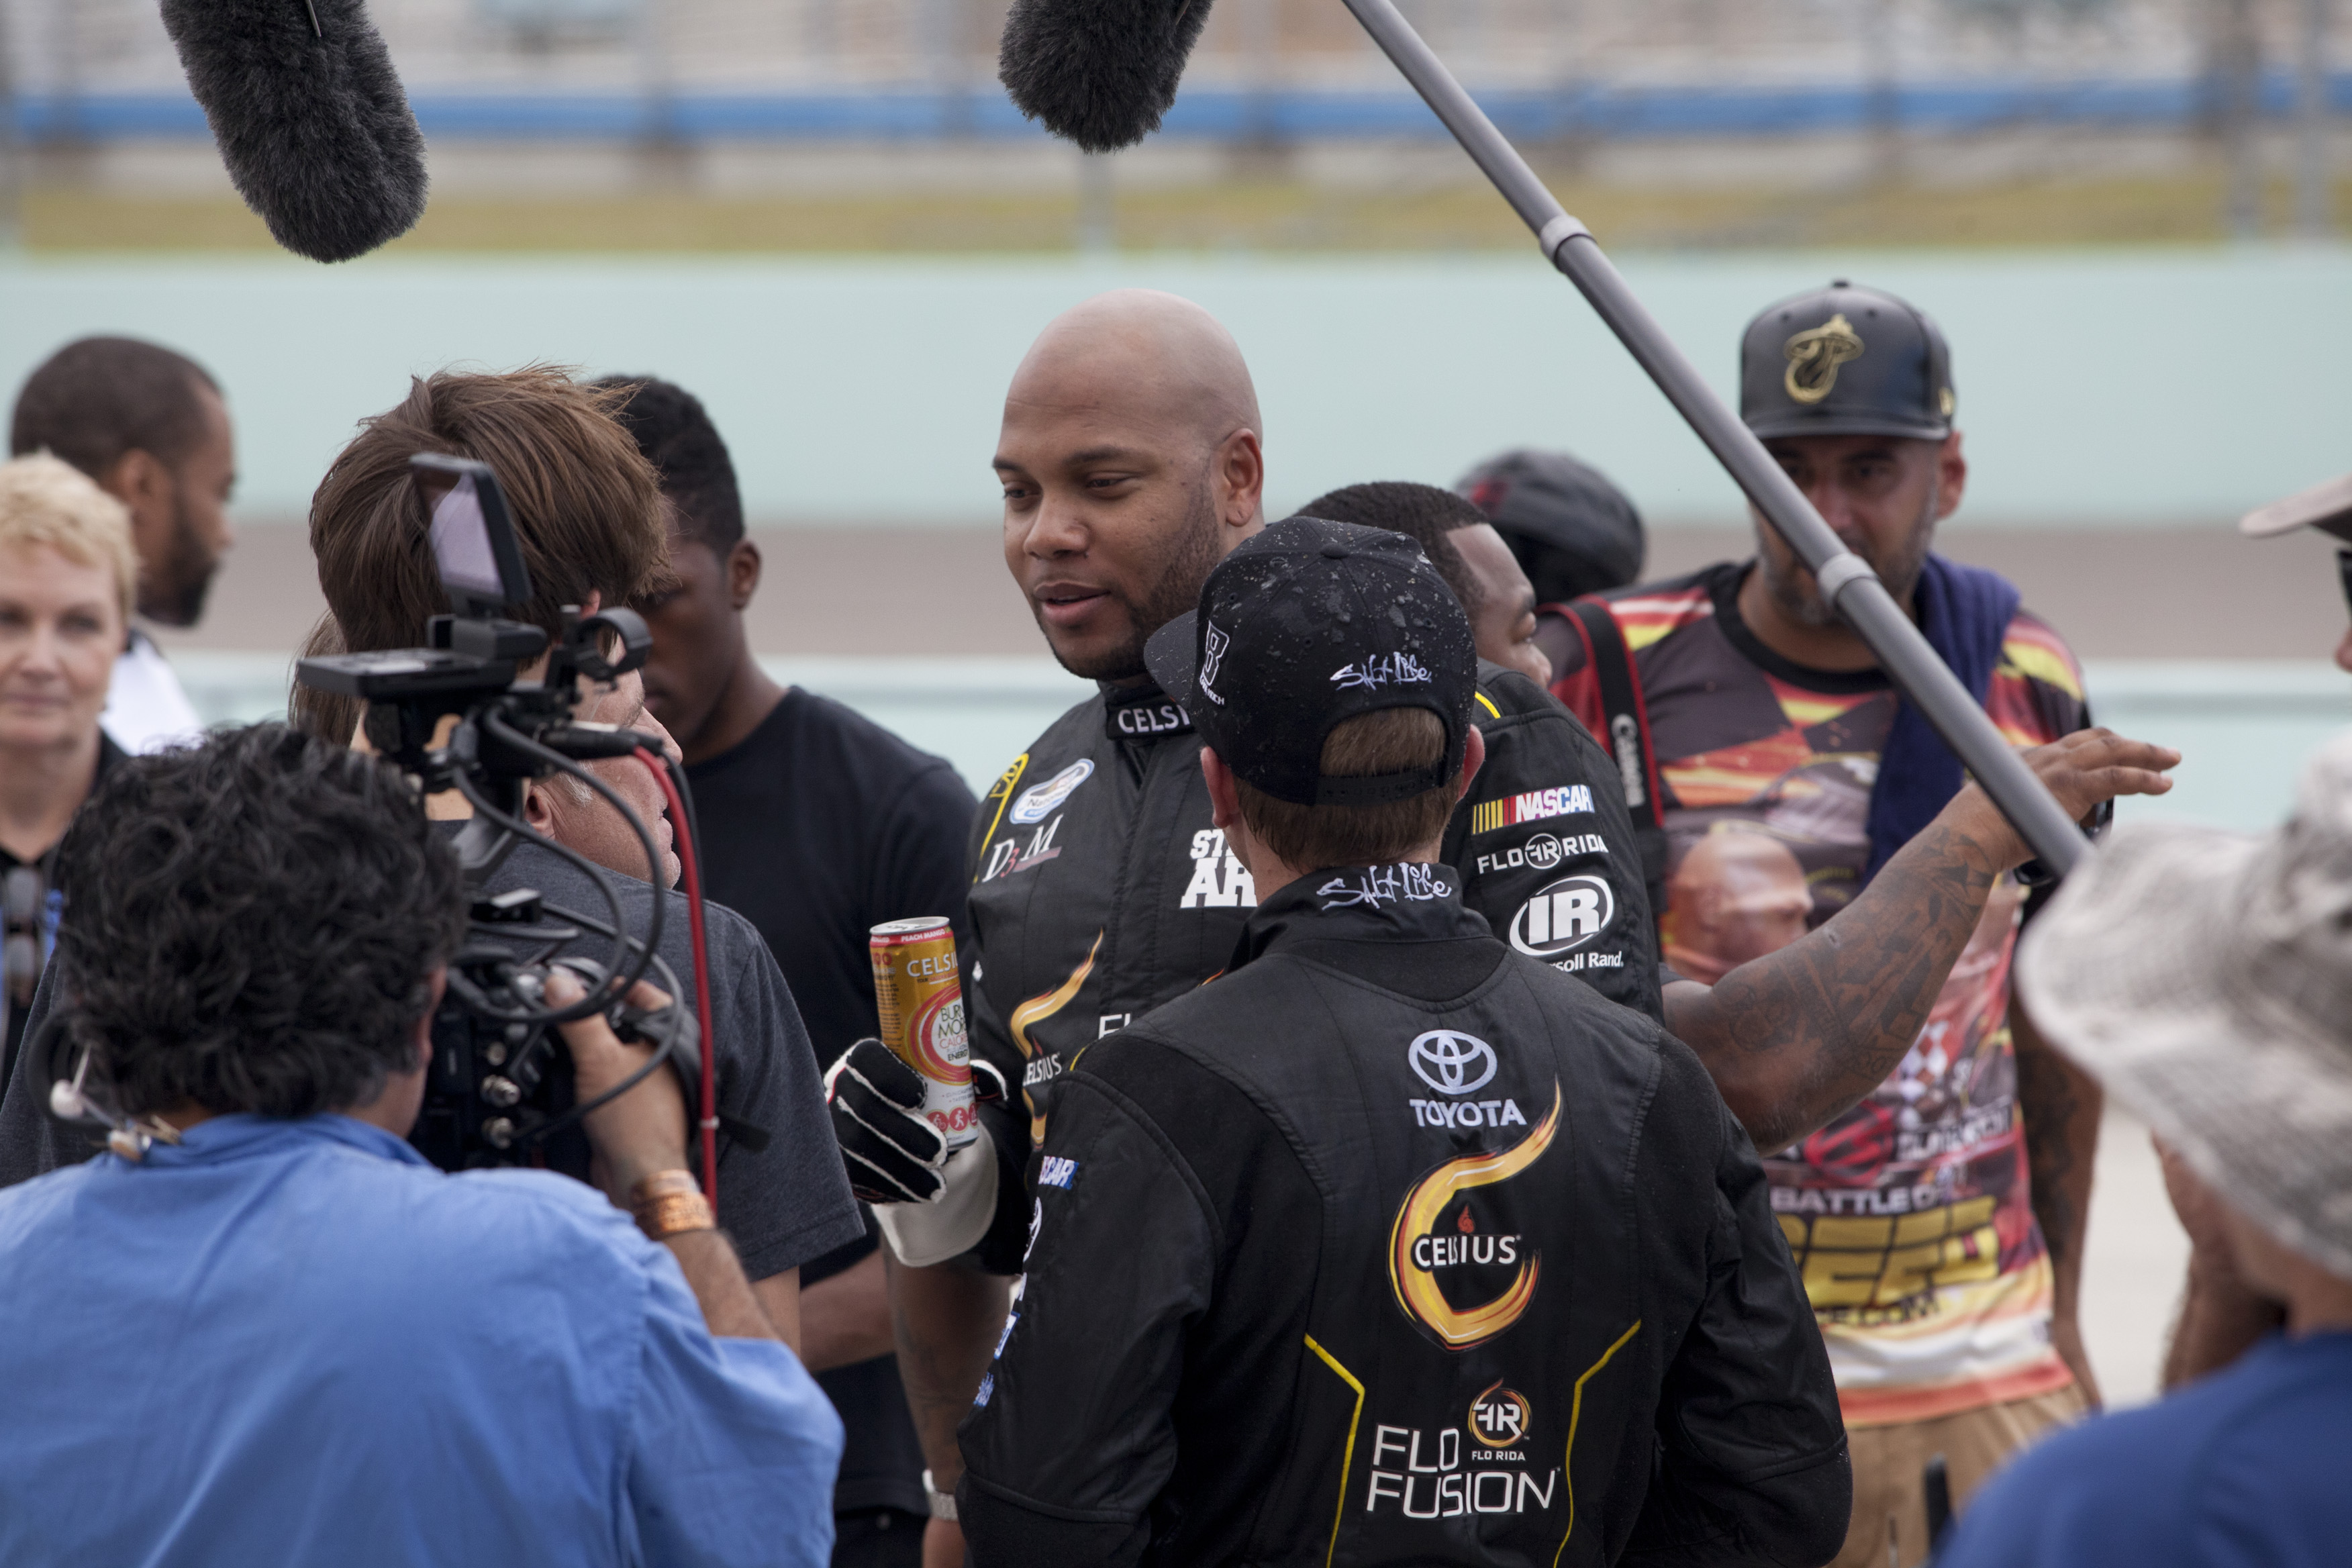 Flo Rida Post-Race - Rapper vs. Racer